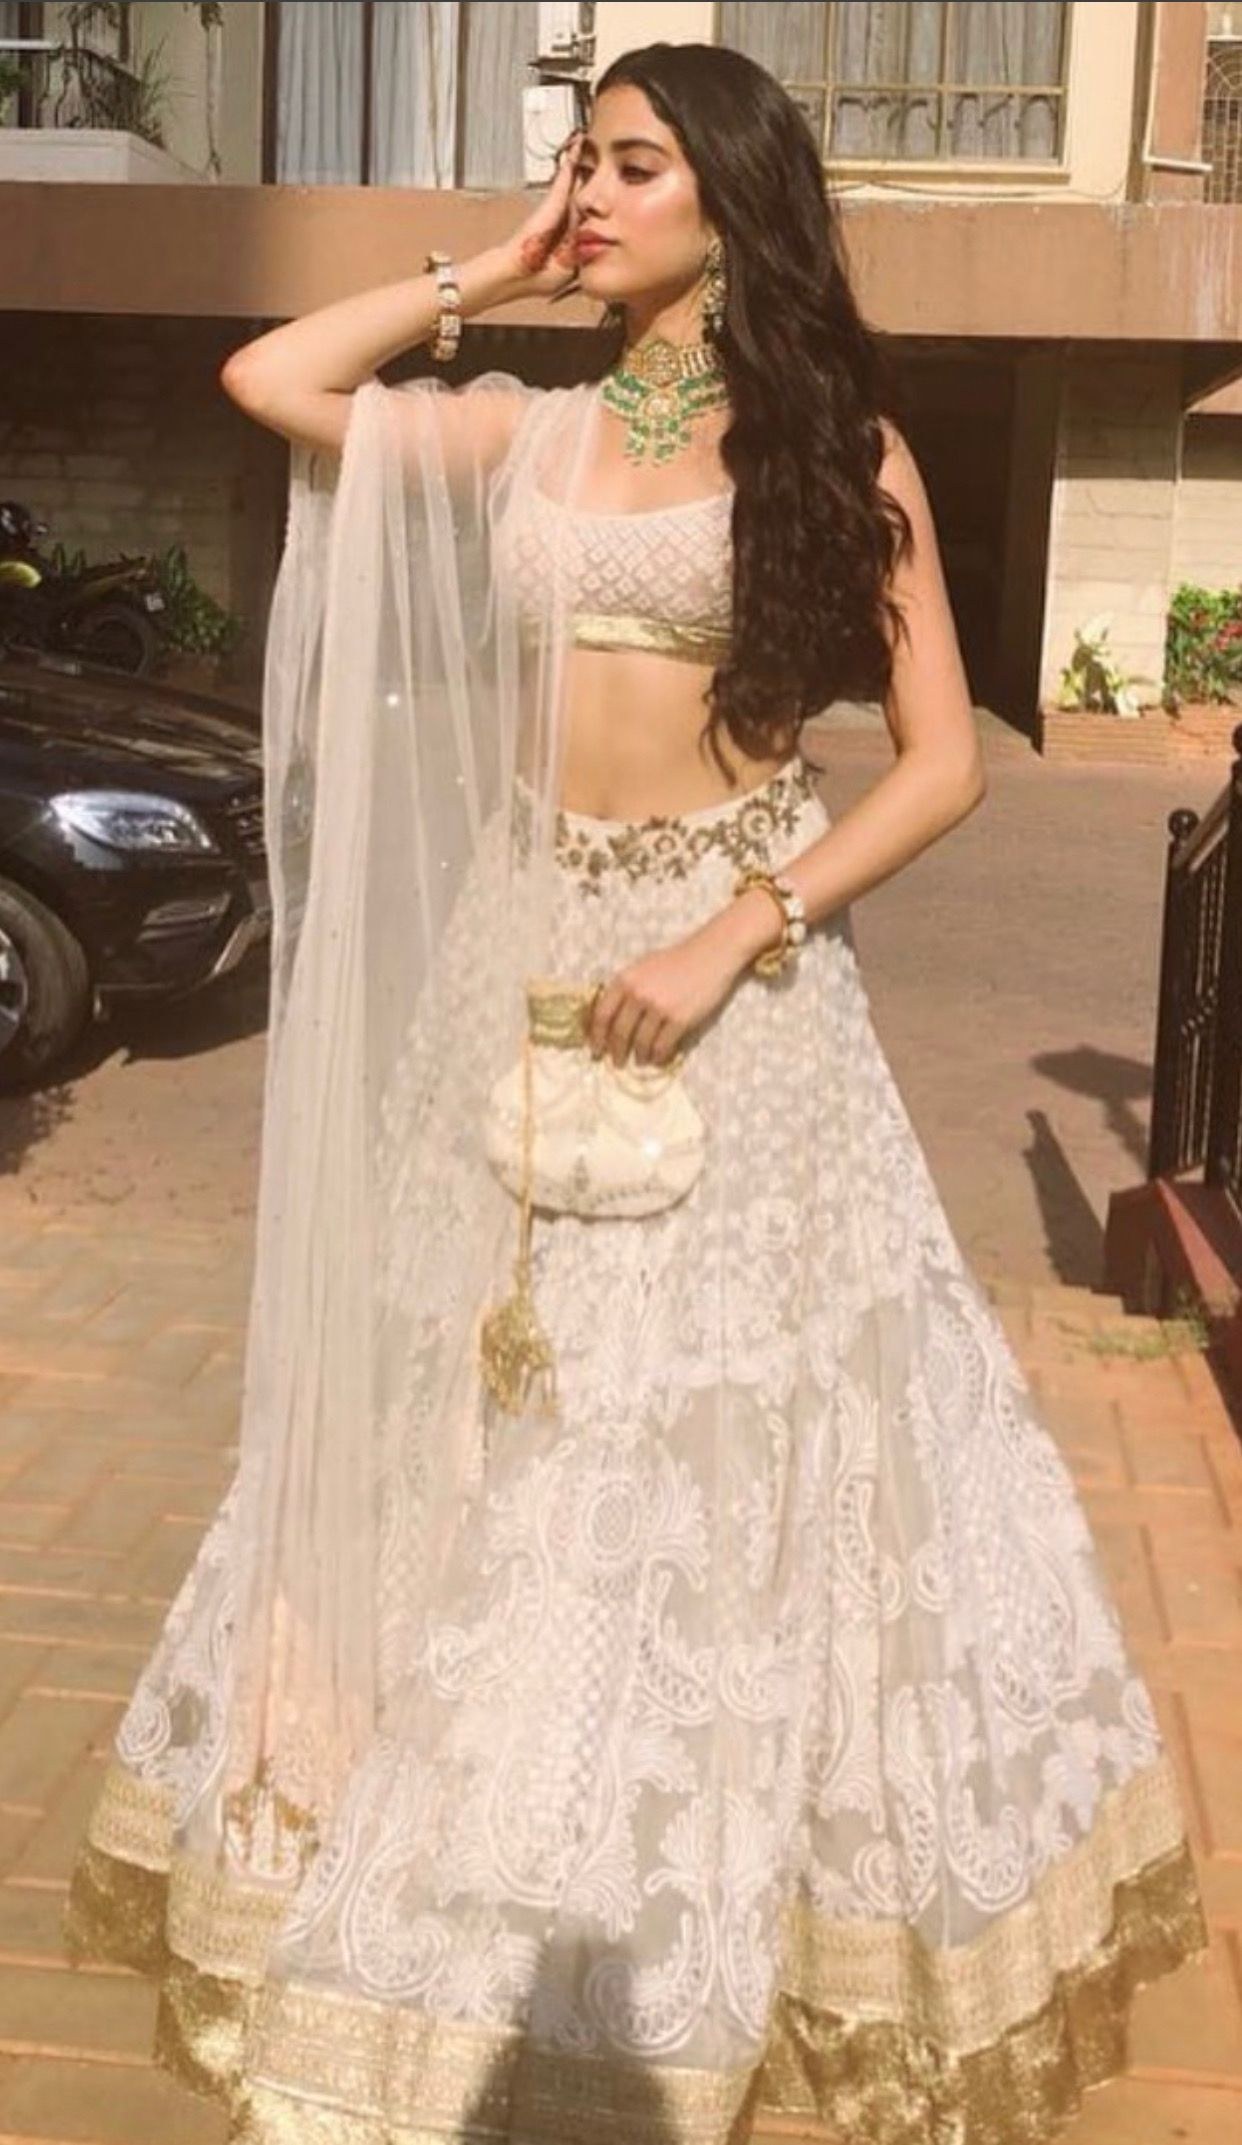 She Is Looking Elegant And Classy In This Manish Malhotra S Attire Beautifuldressforweddingfunction Indian Wedding Dress Indian Bridal Wear Indian Dresses